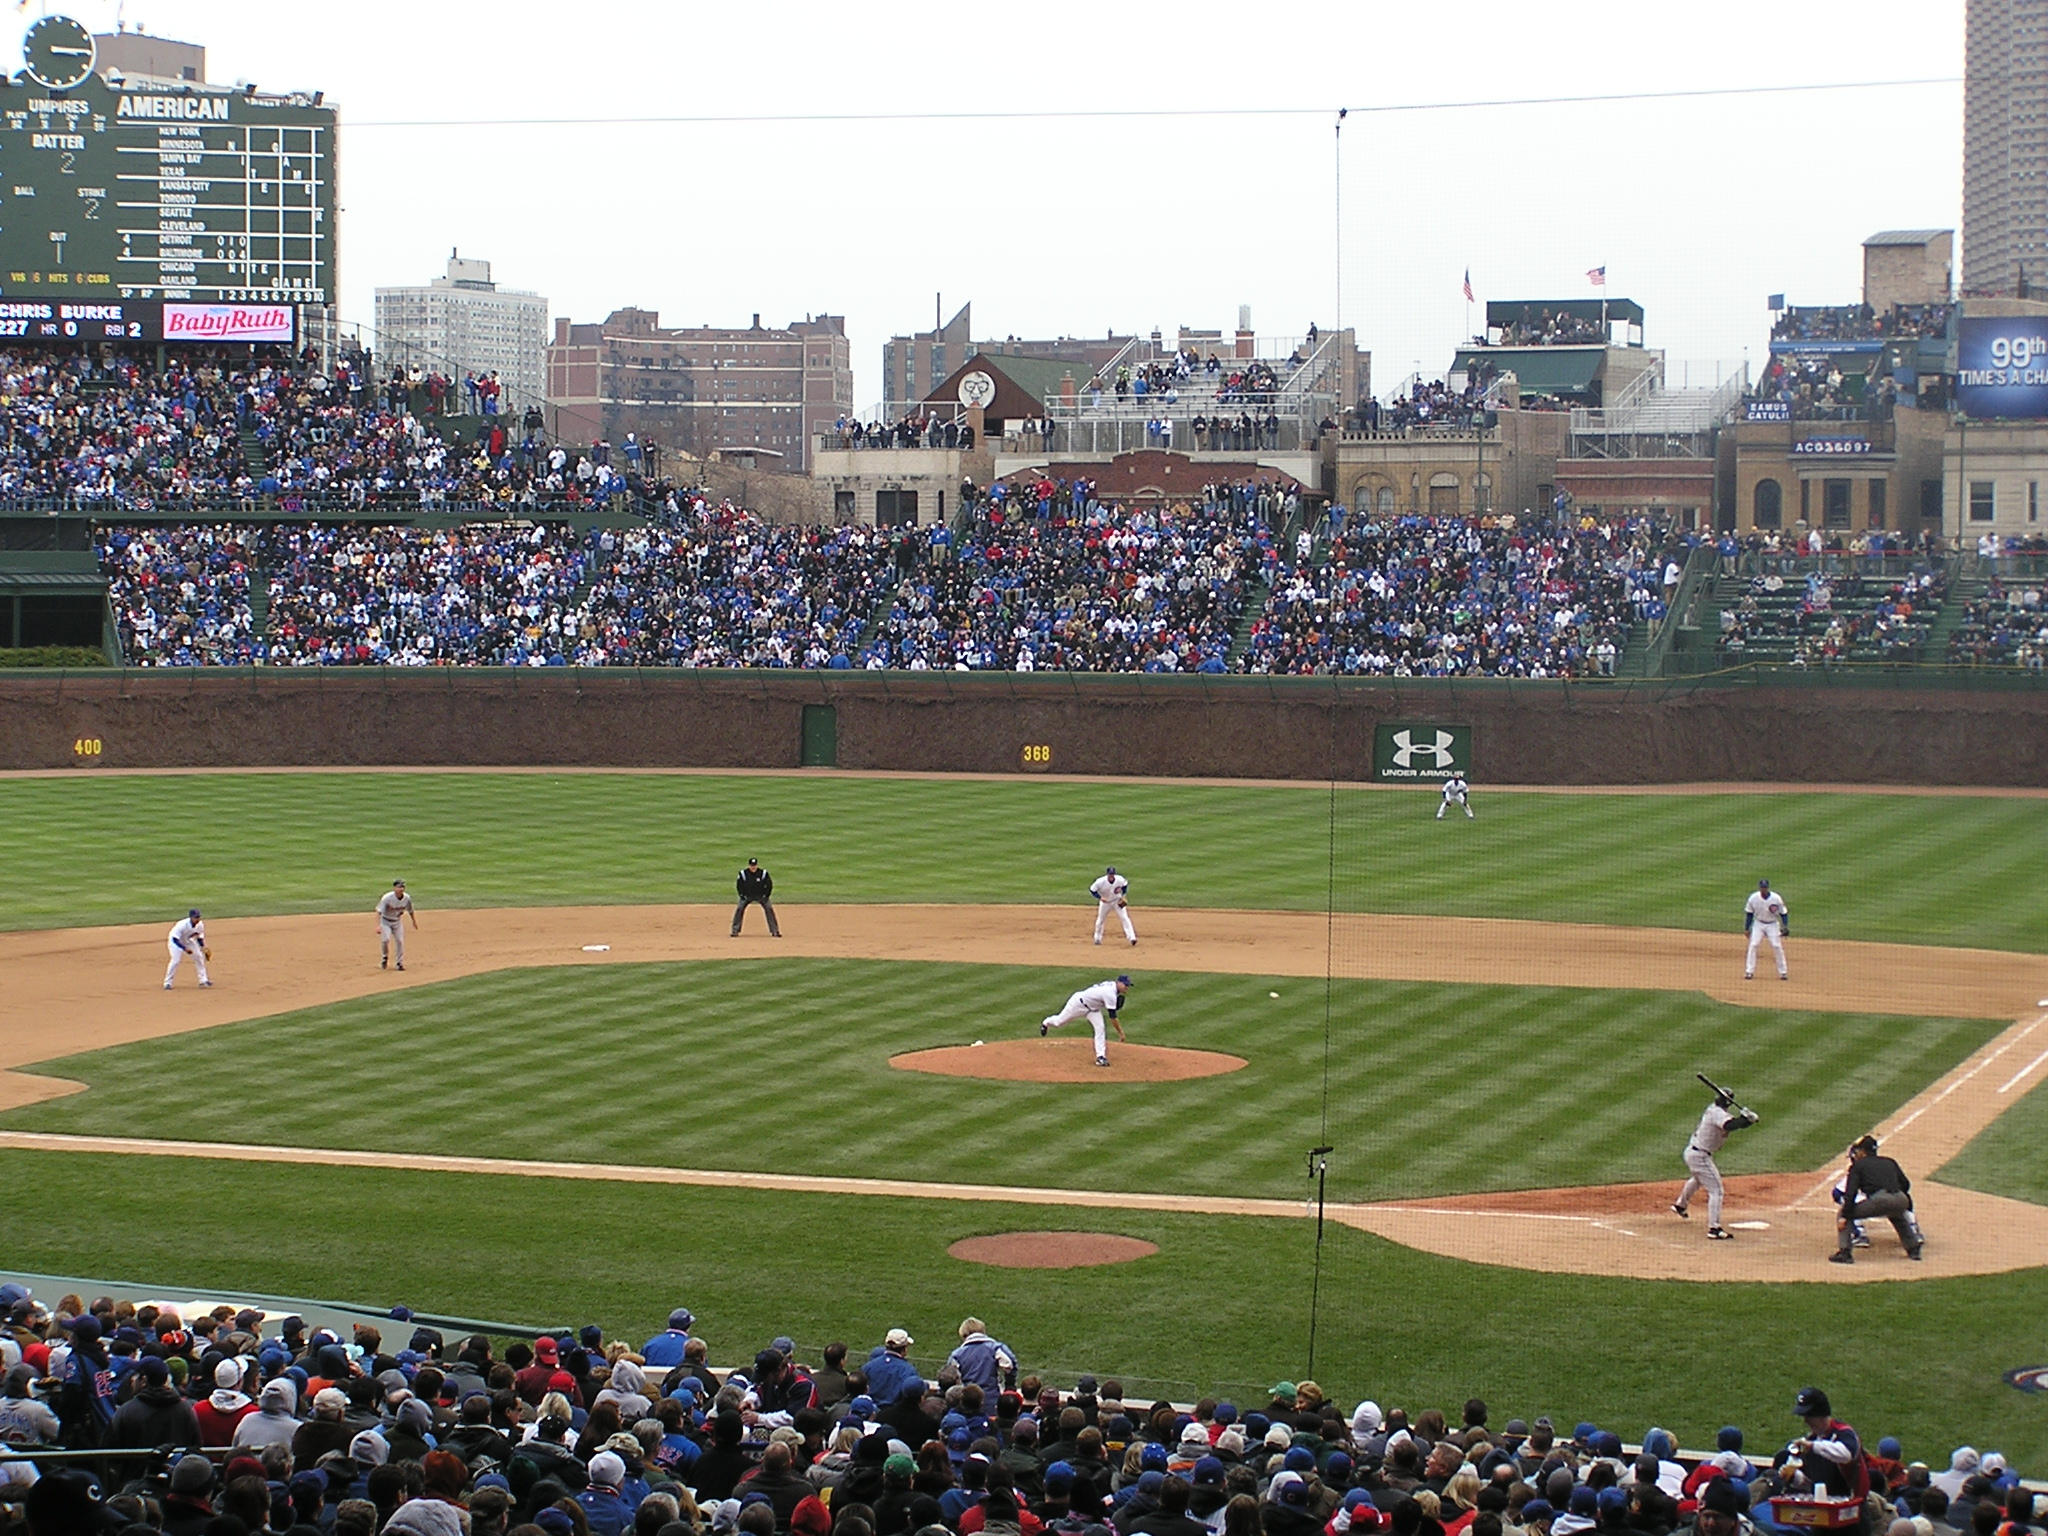 The Pitch - Wrigley Field, Chicago, Il